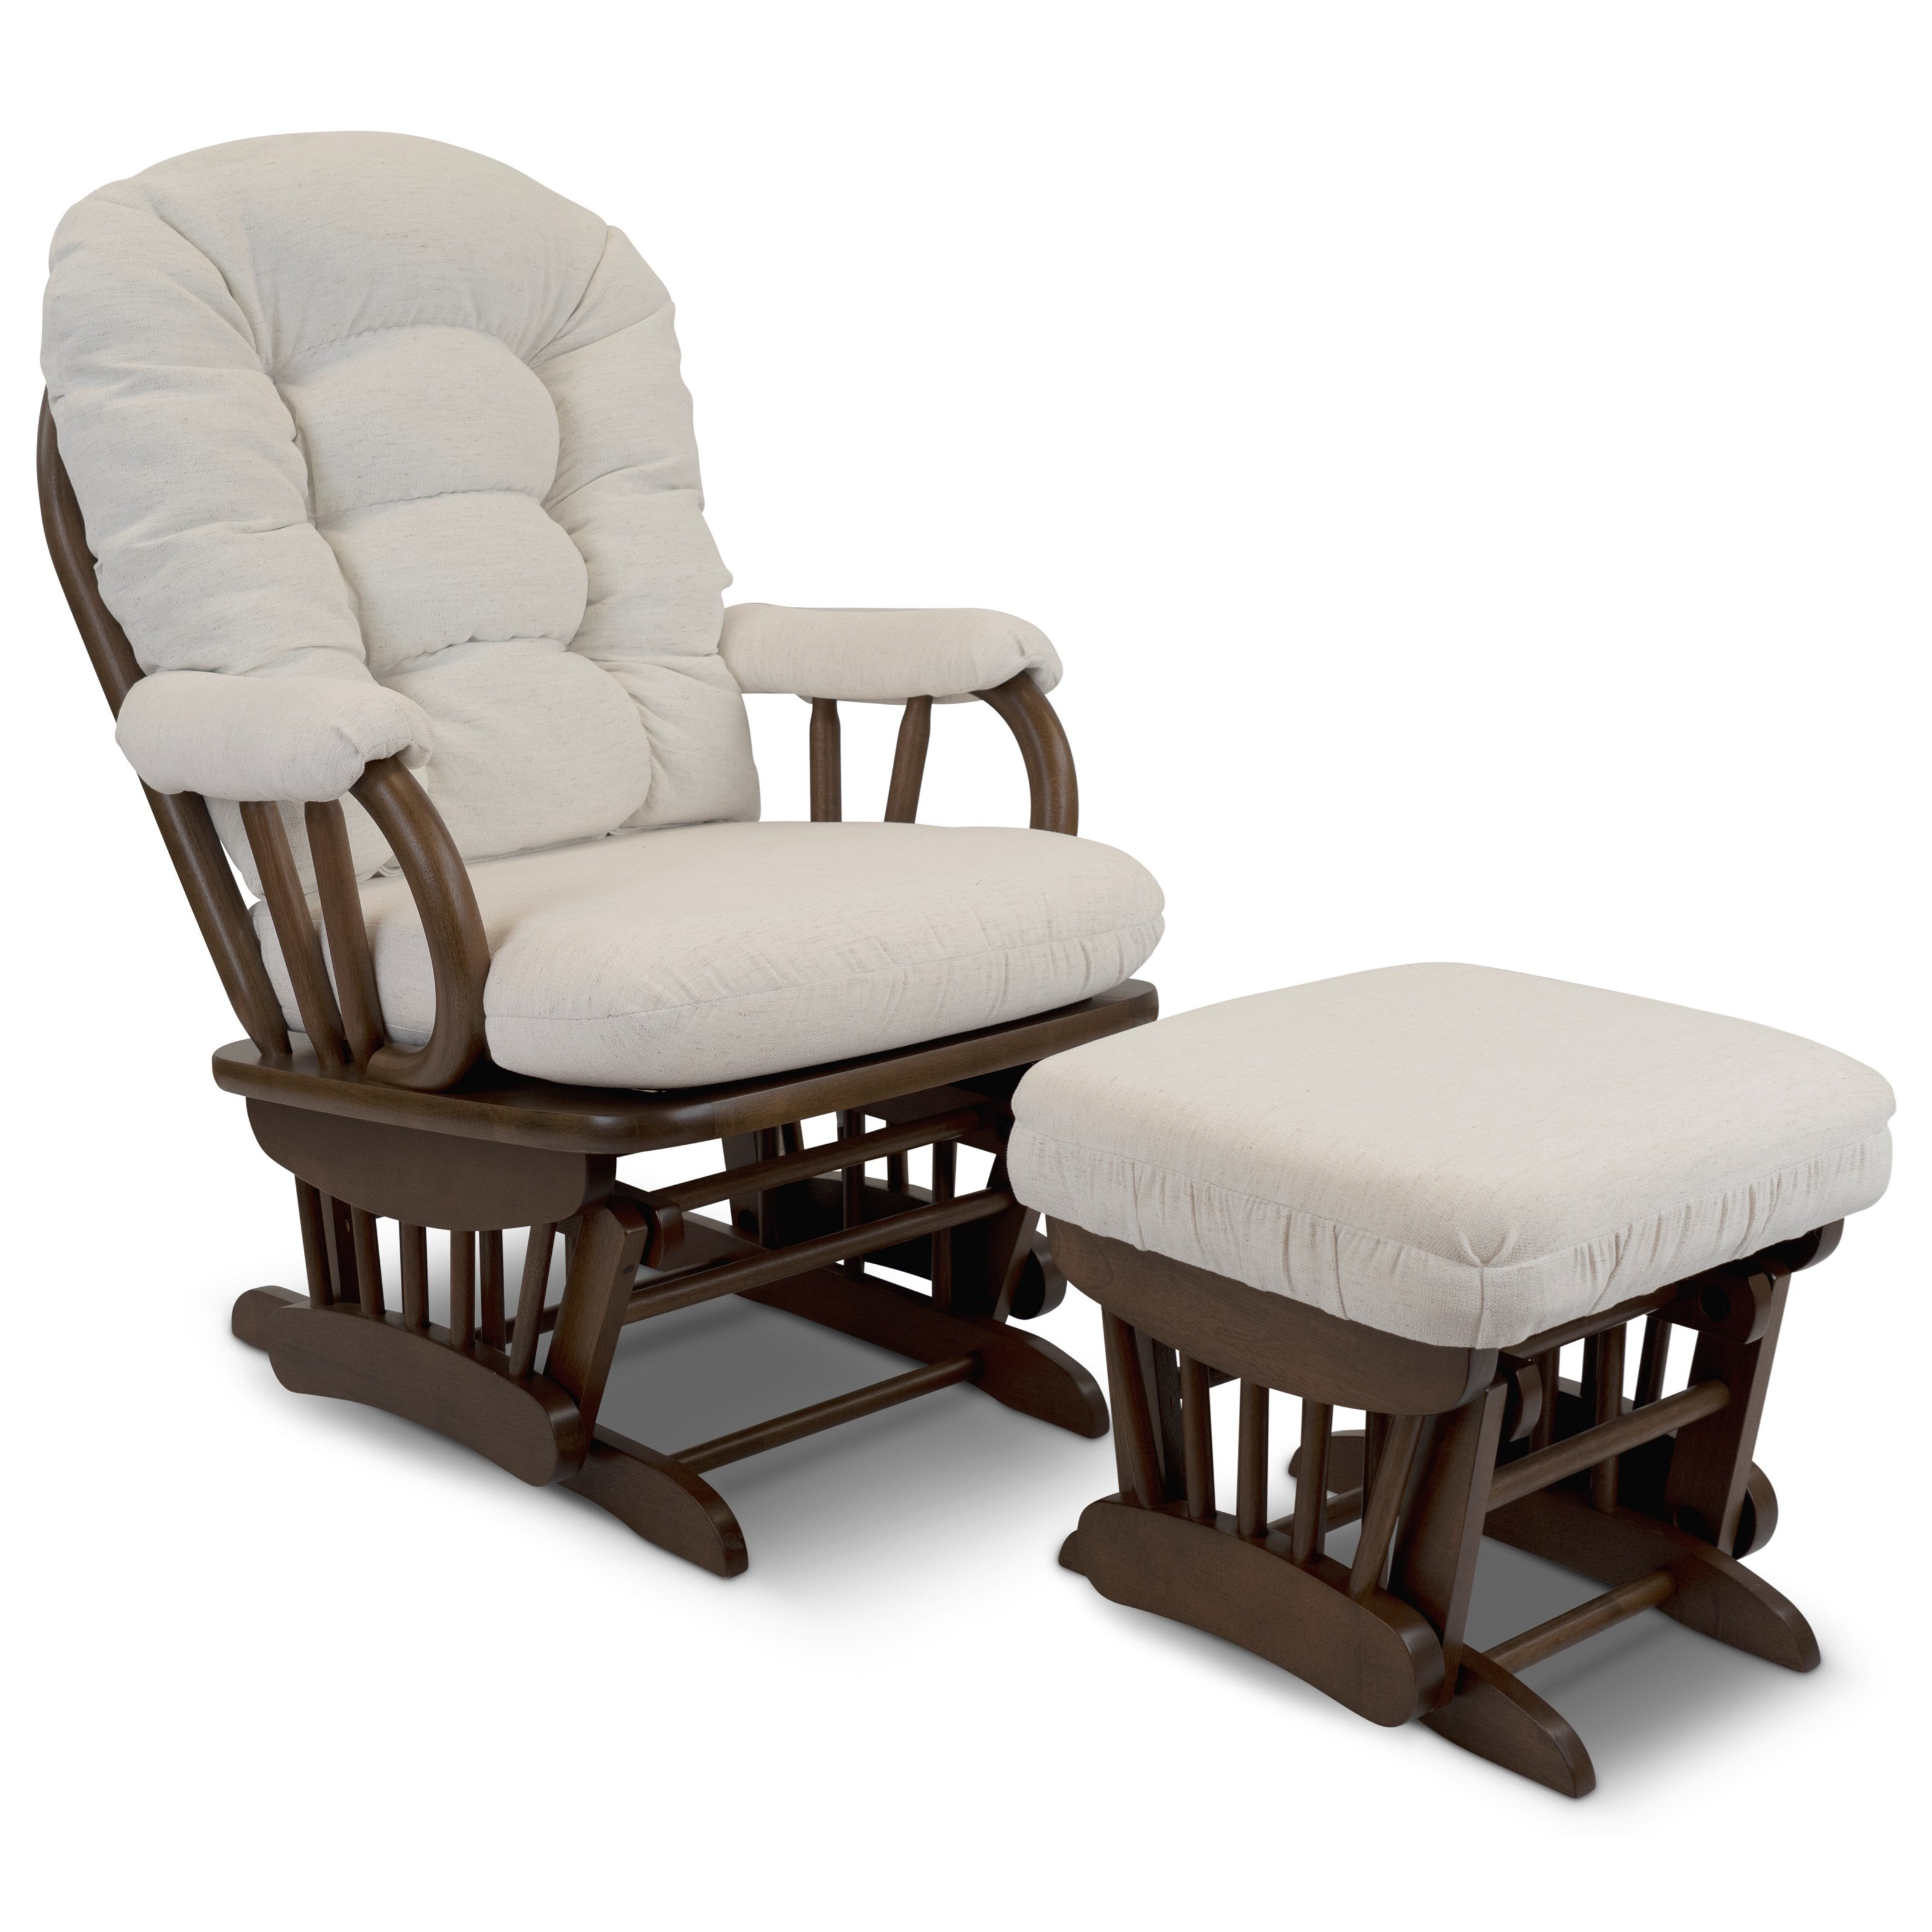 Sona Glider Chair & Ottoman Set by Best Home Furnishings at Baer's Furniture